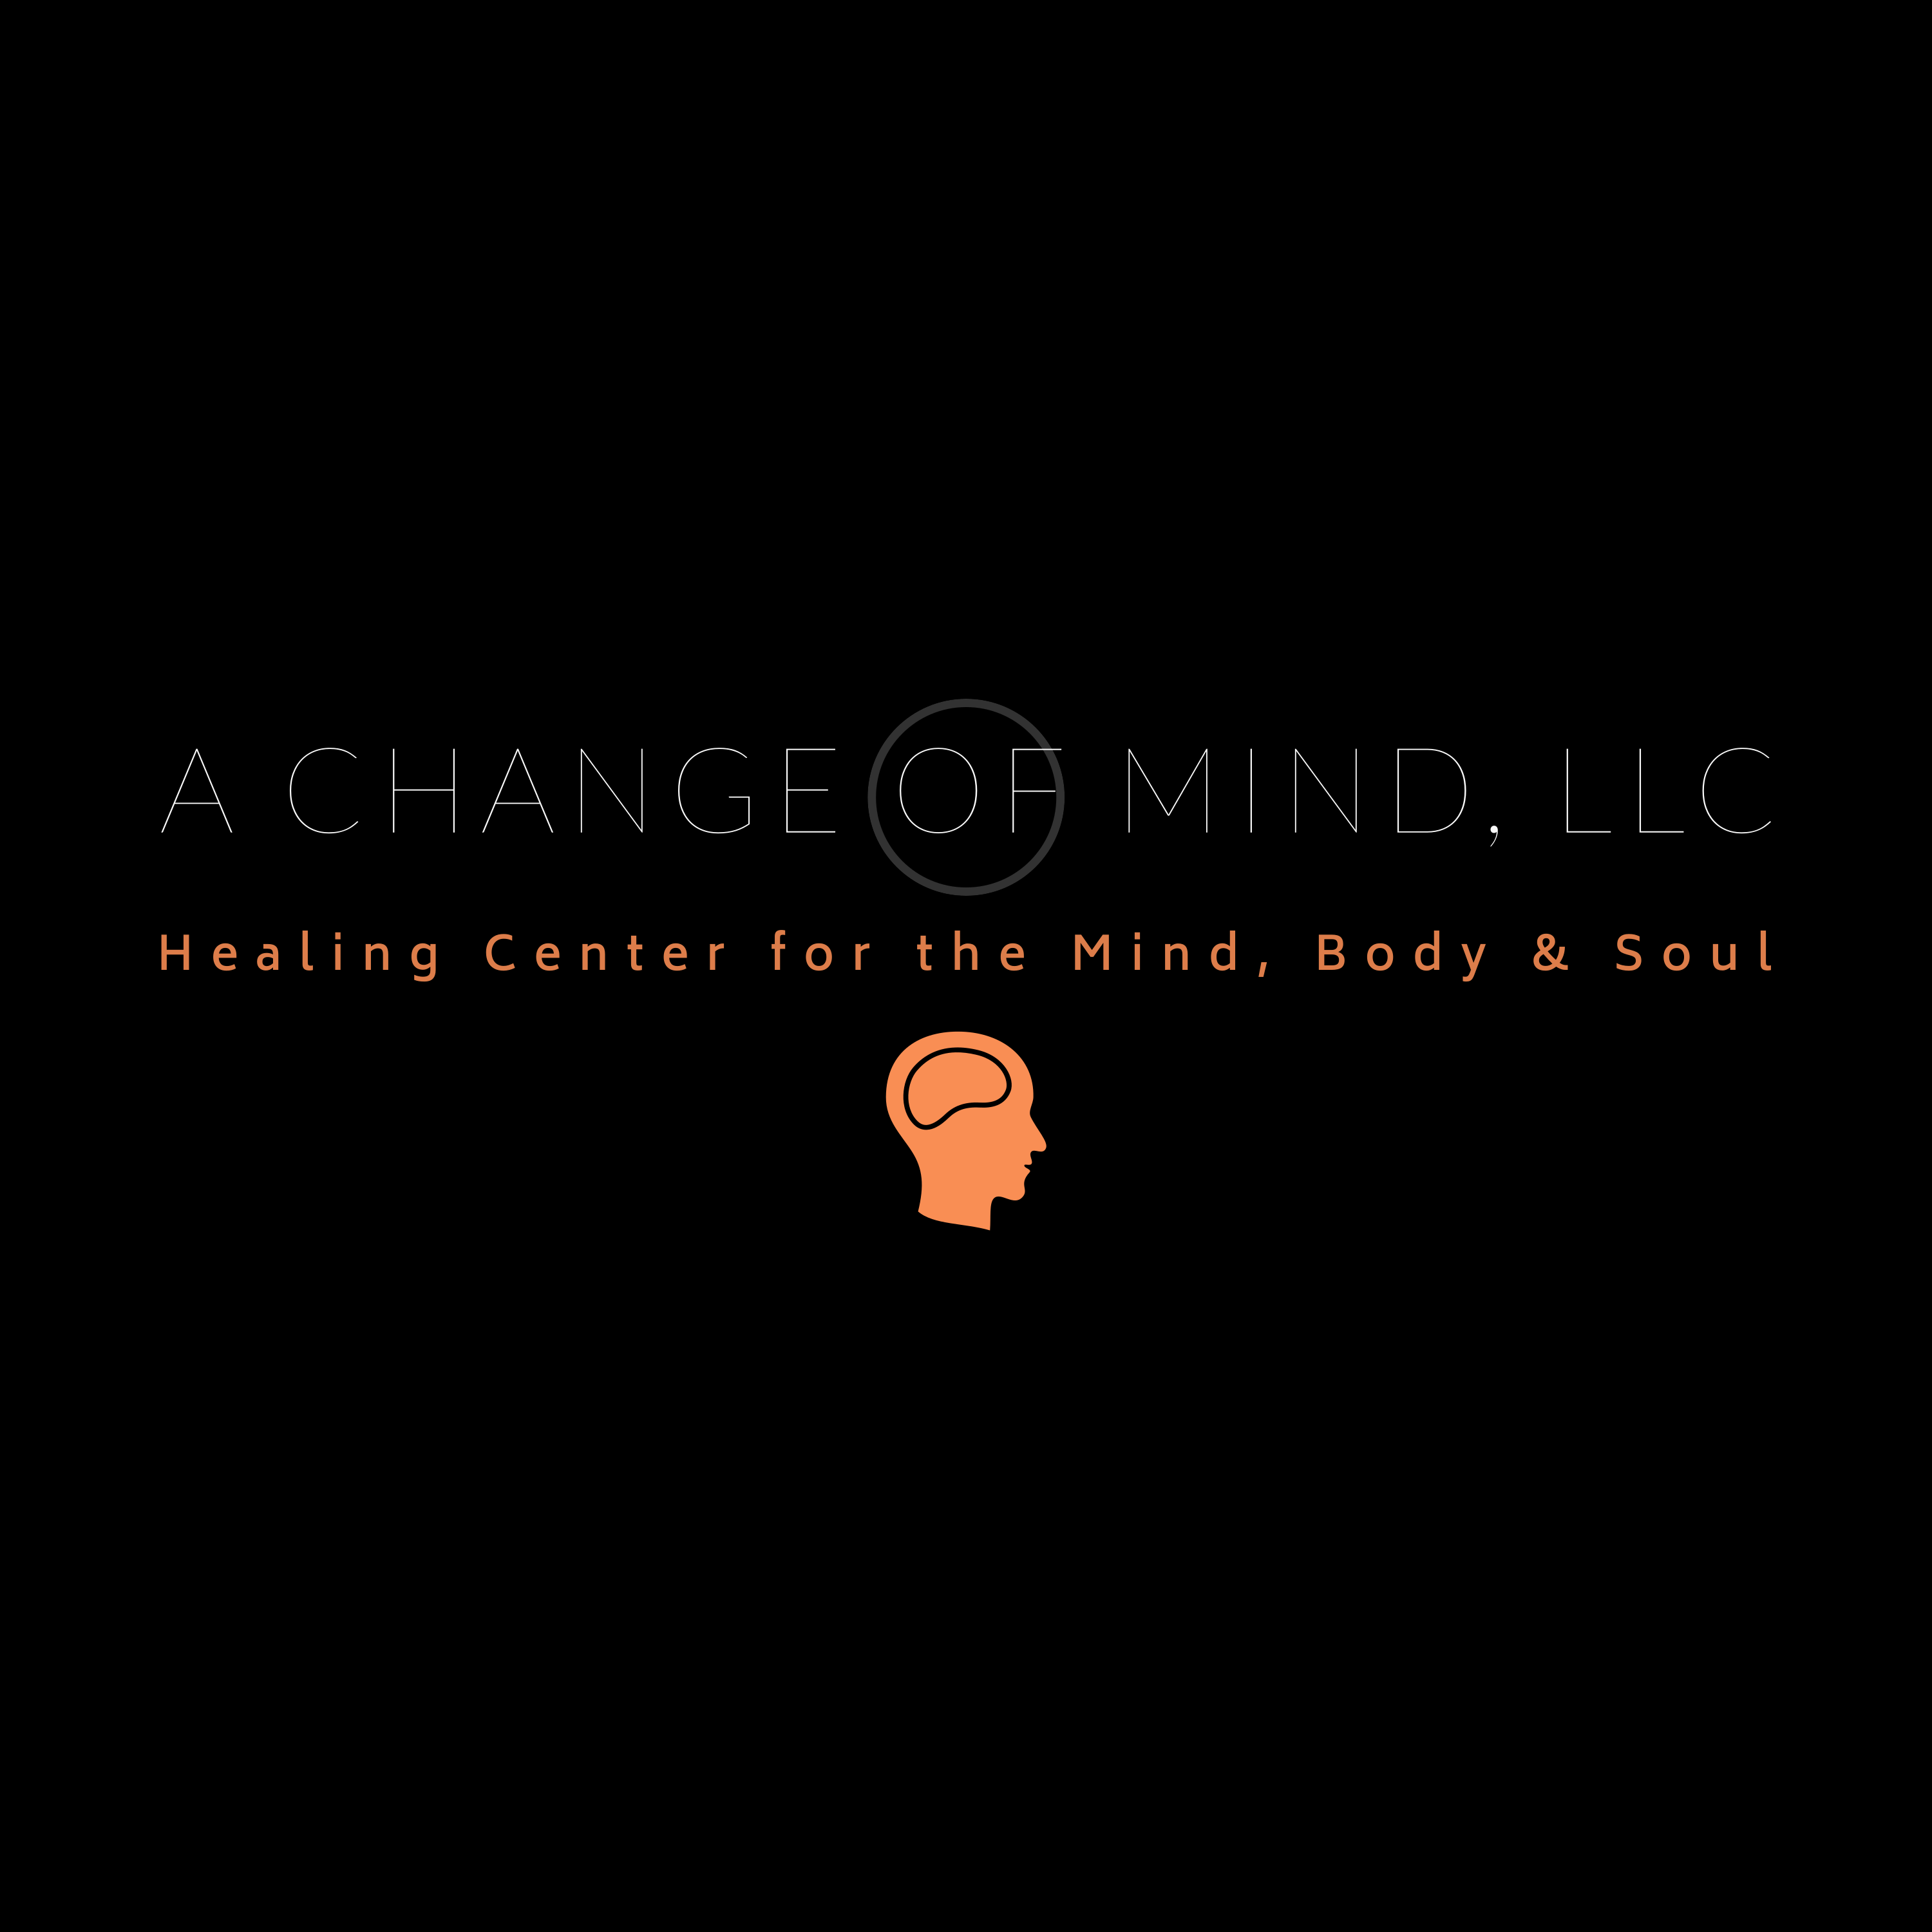 A CHANGE OF MIND, LLC